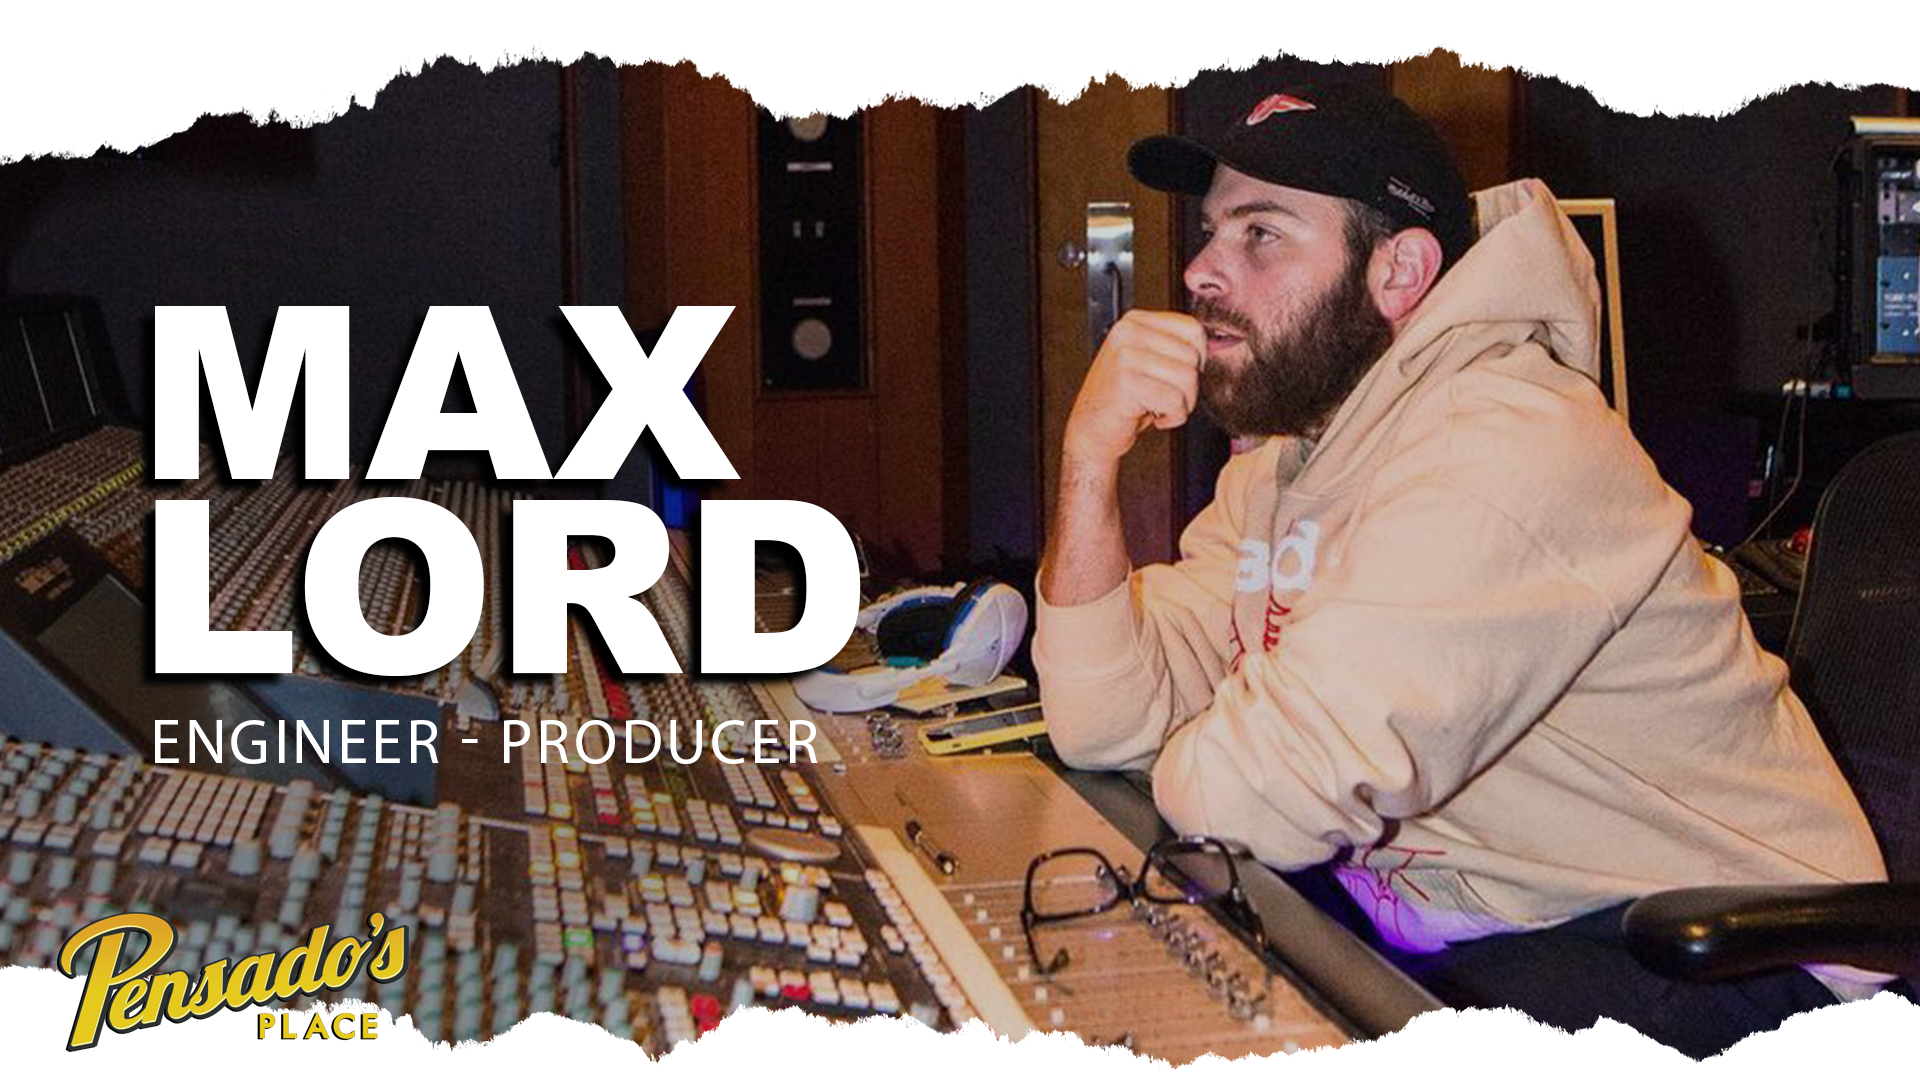 Juice WRLD Engineer / Producer, Max Lord